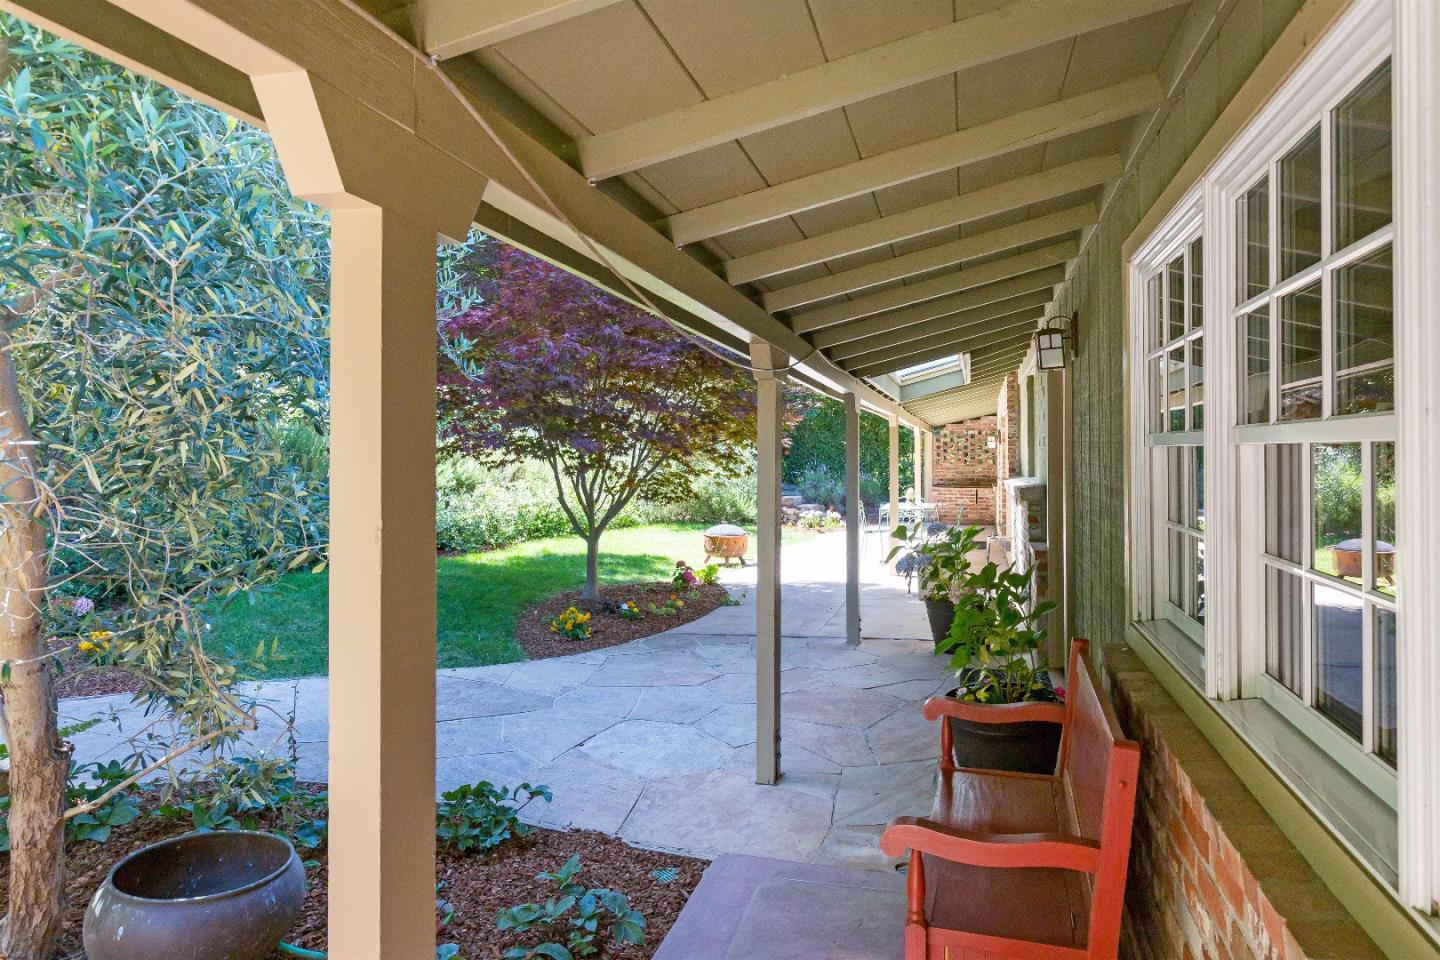 Additional photo for property listing at 155 Bardet Road  Woodside, California 94062 United States